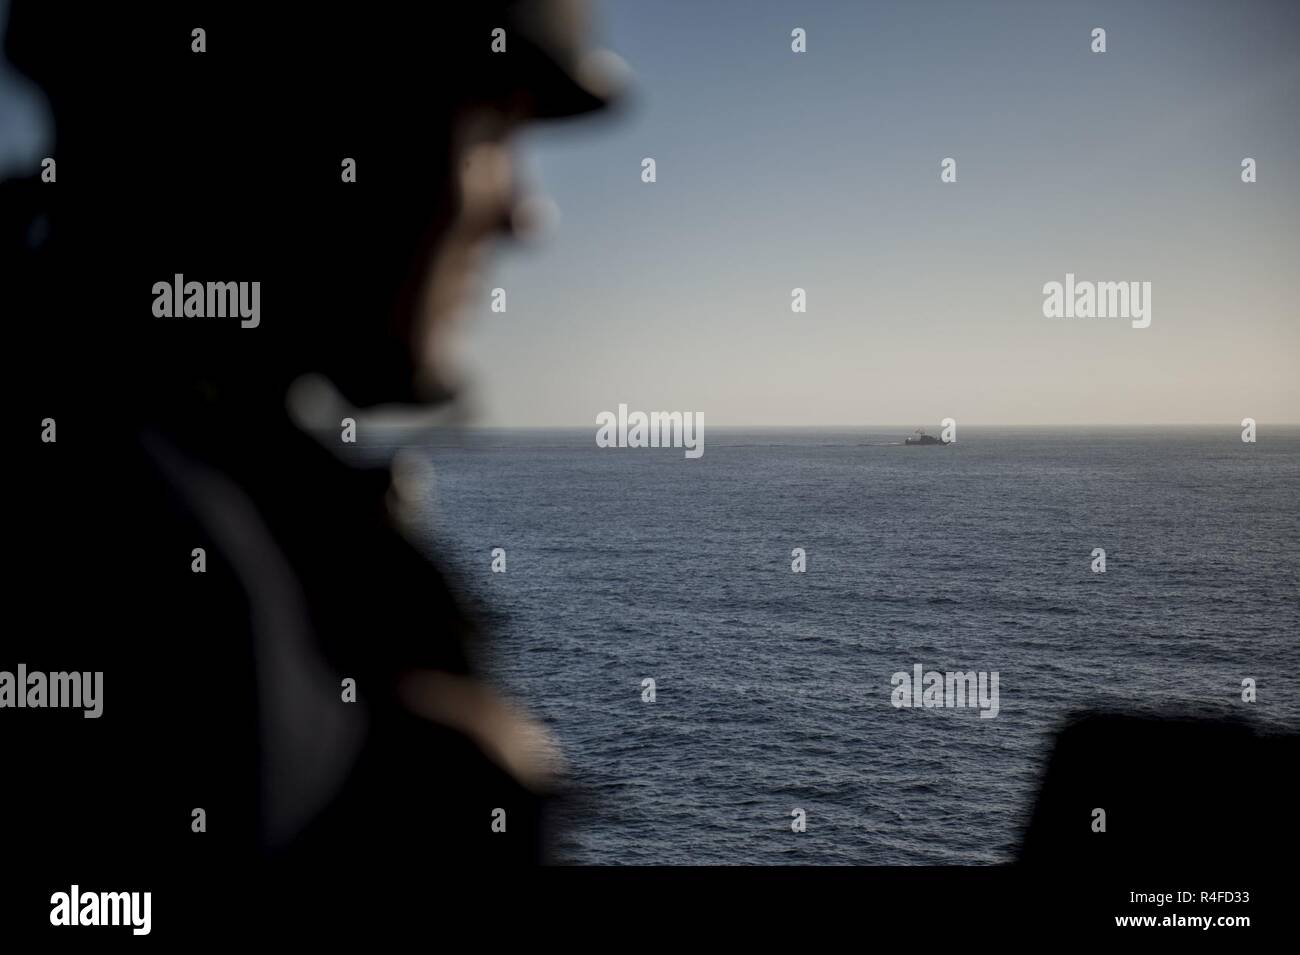 PACIFIC OCEAN (May 2, 2017) Gunners Mate Seaman Nathaniel Carnley, a Houston native, assigned to the Operations Department of amphibious dock landing ship USS Pearl Harbor (LSD 52), stands watch during a  routine transit off the coast of Southern CaliforniaSouthern California Presence Operations Transit (SPO-T) on the ship's forecastle. 1,800 Sailors and 2,600 Marines assigned to the America Amphibious Ready Group (ARG) and the 15th Marine Expeditionary Unit (MEU) are currently conducting a Composite Unit Training Exercise (COMPTUEX) off the coast of Southern California in preparation for the  - Stock Image